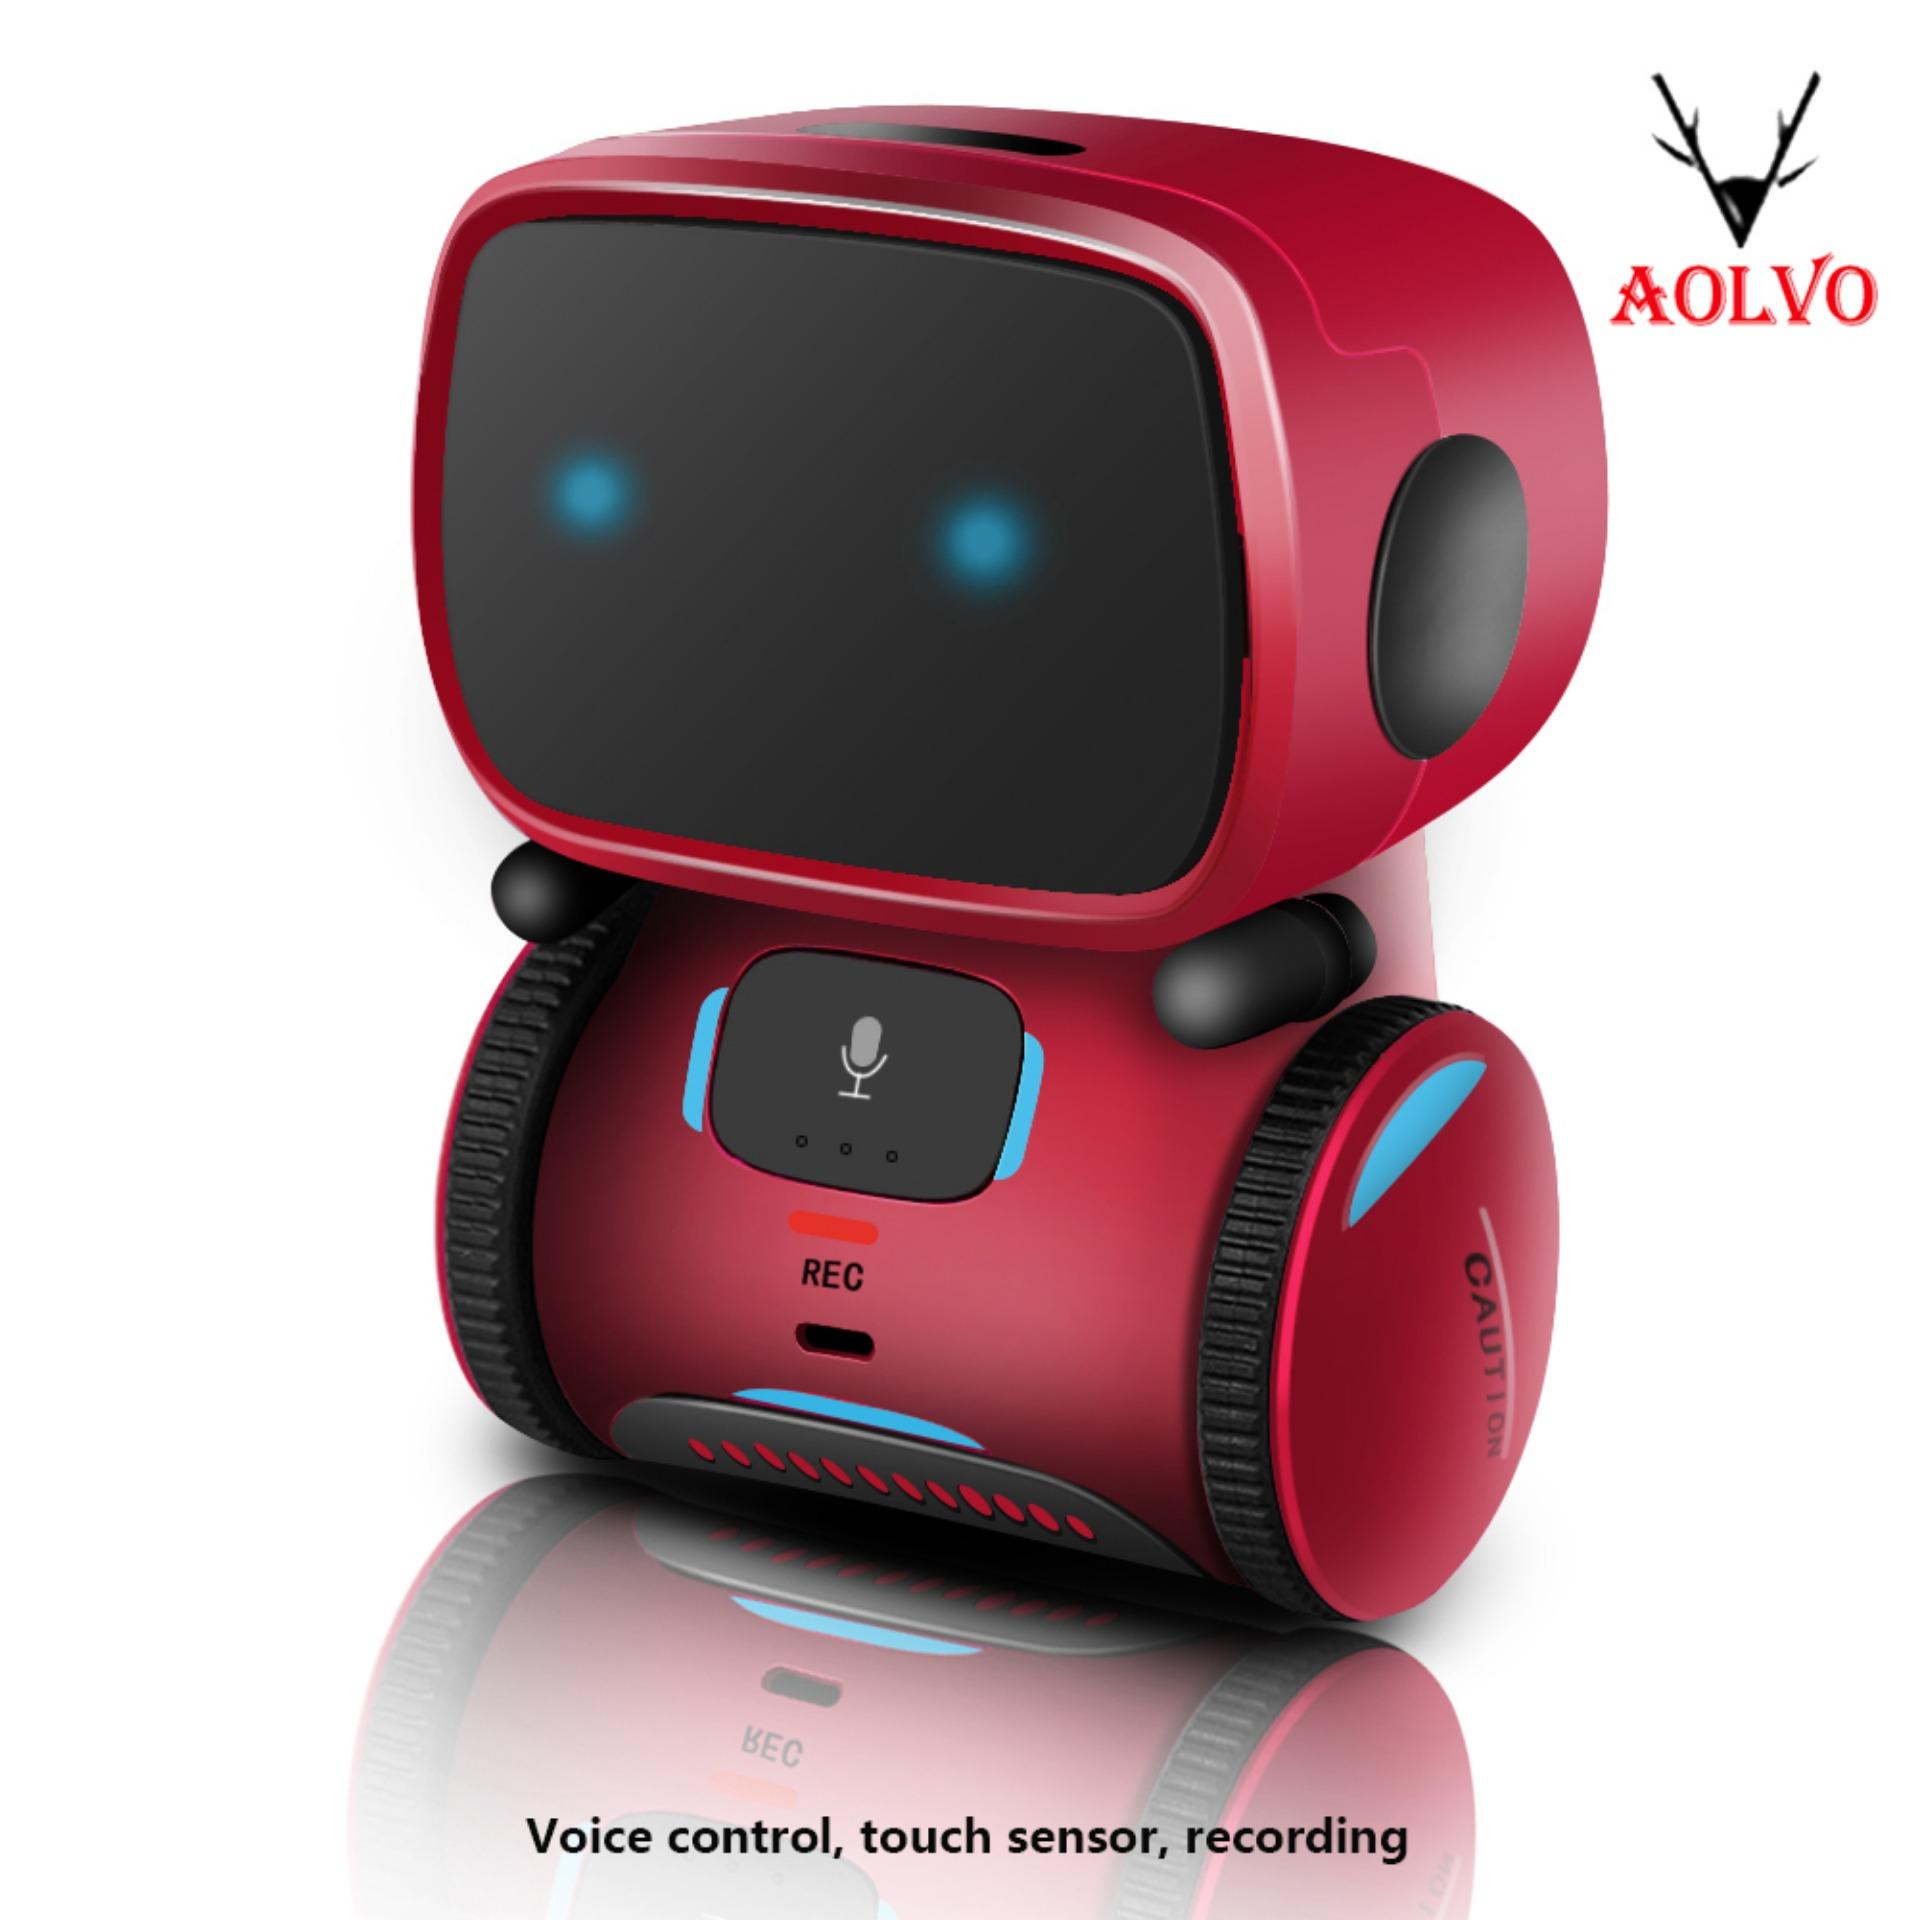 Aolvo RC Robot With Voice Control, New Touch Sensing Interactive Smart Robot Toys, Music